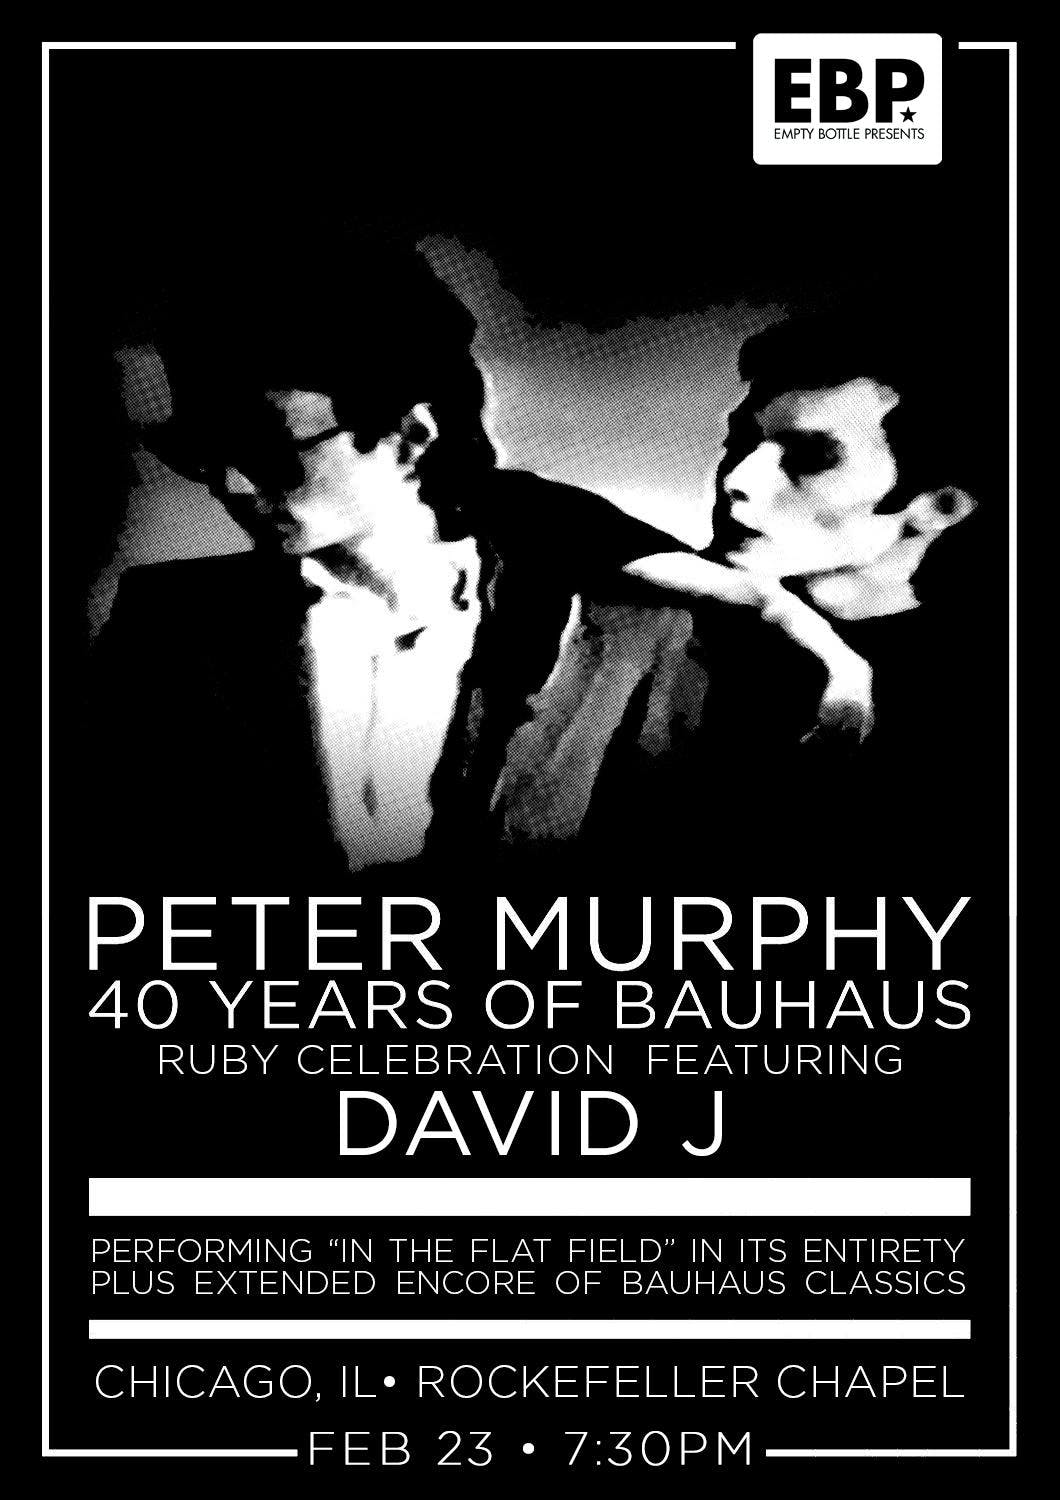 "Peter Murphy 40 years of Bauhaus, Ruby Celebration featuring David J Performing ""In the Flat Field"" in its entirety plus extended encore of Bauhaus classics"